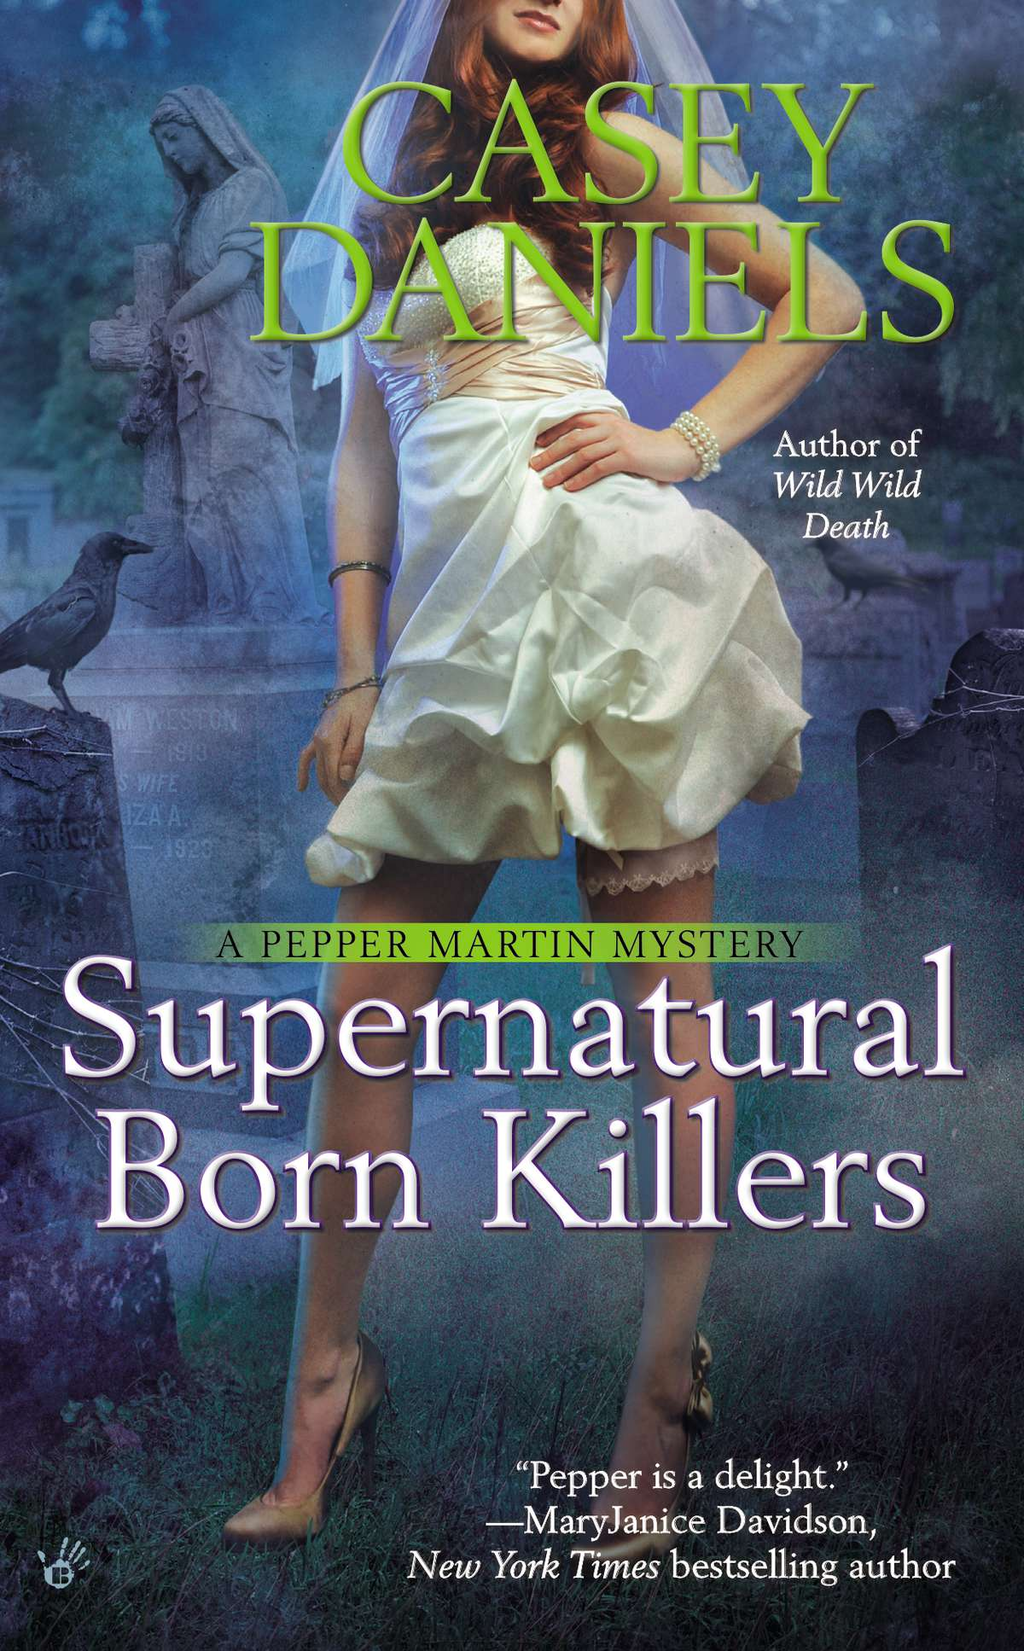 Supernatural Born Killers By: Casey Daniels